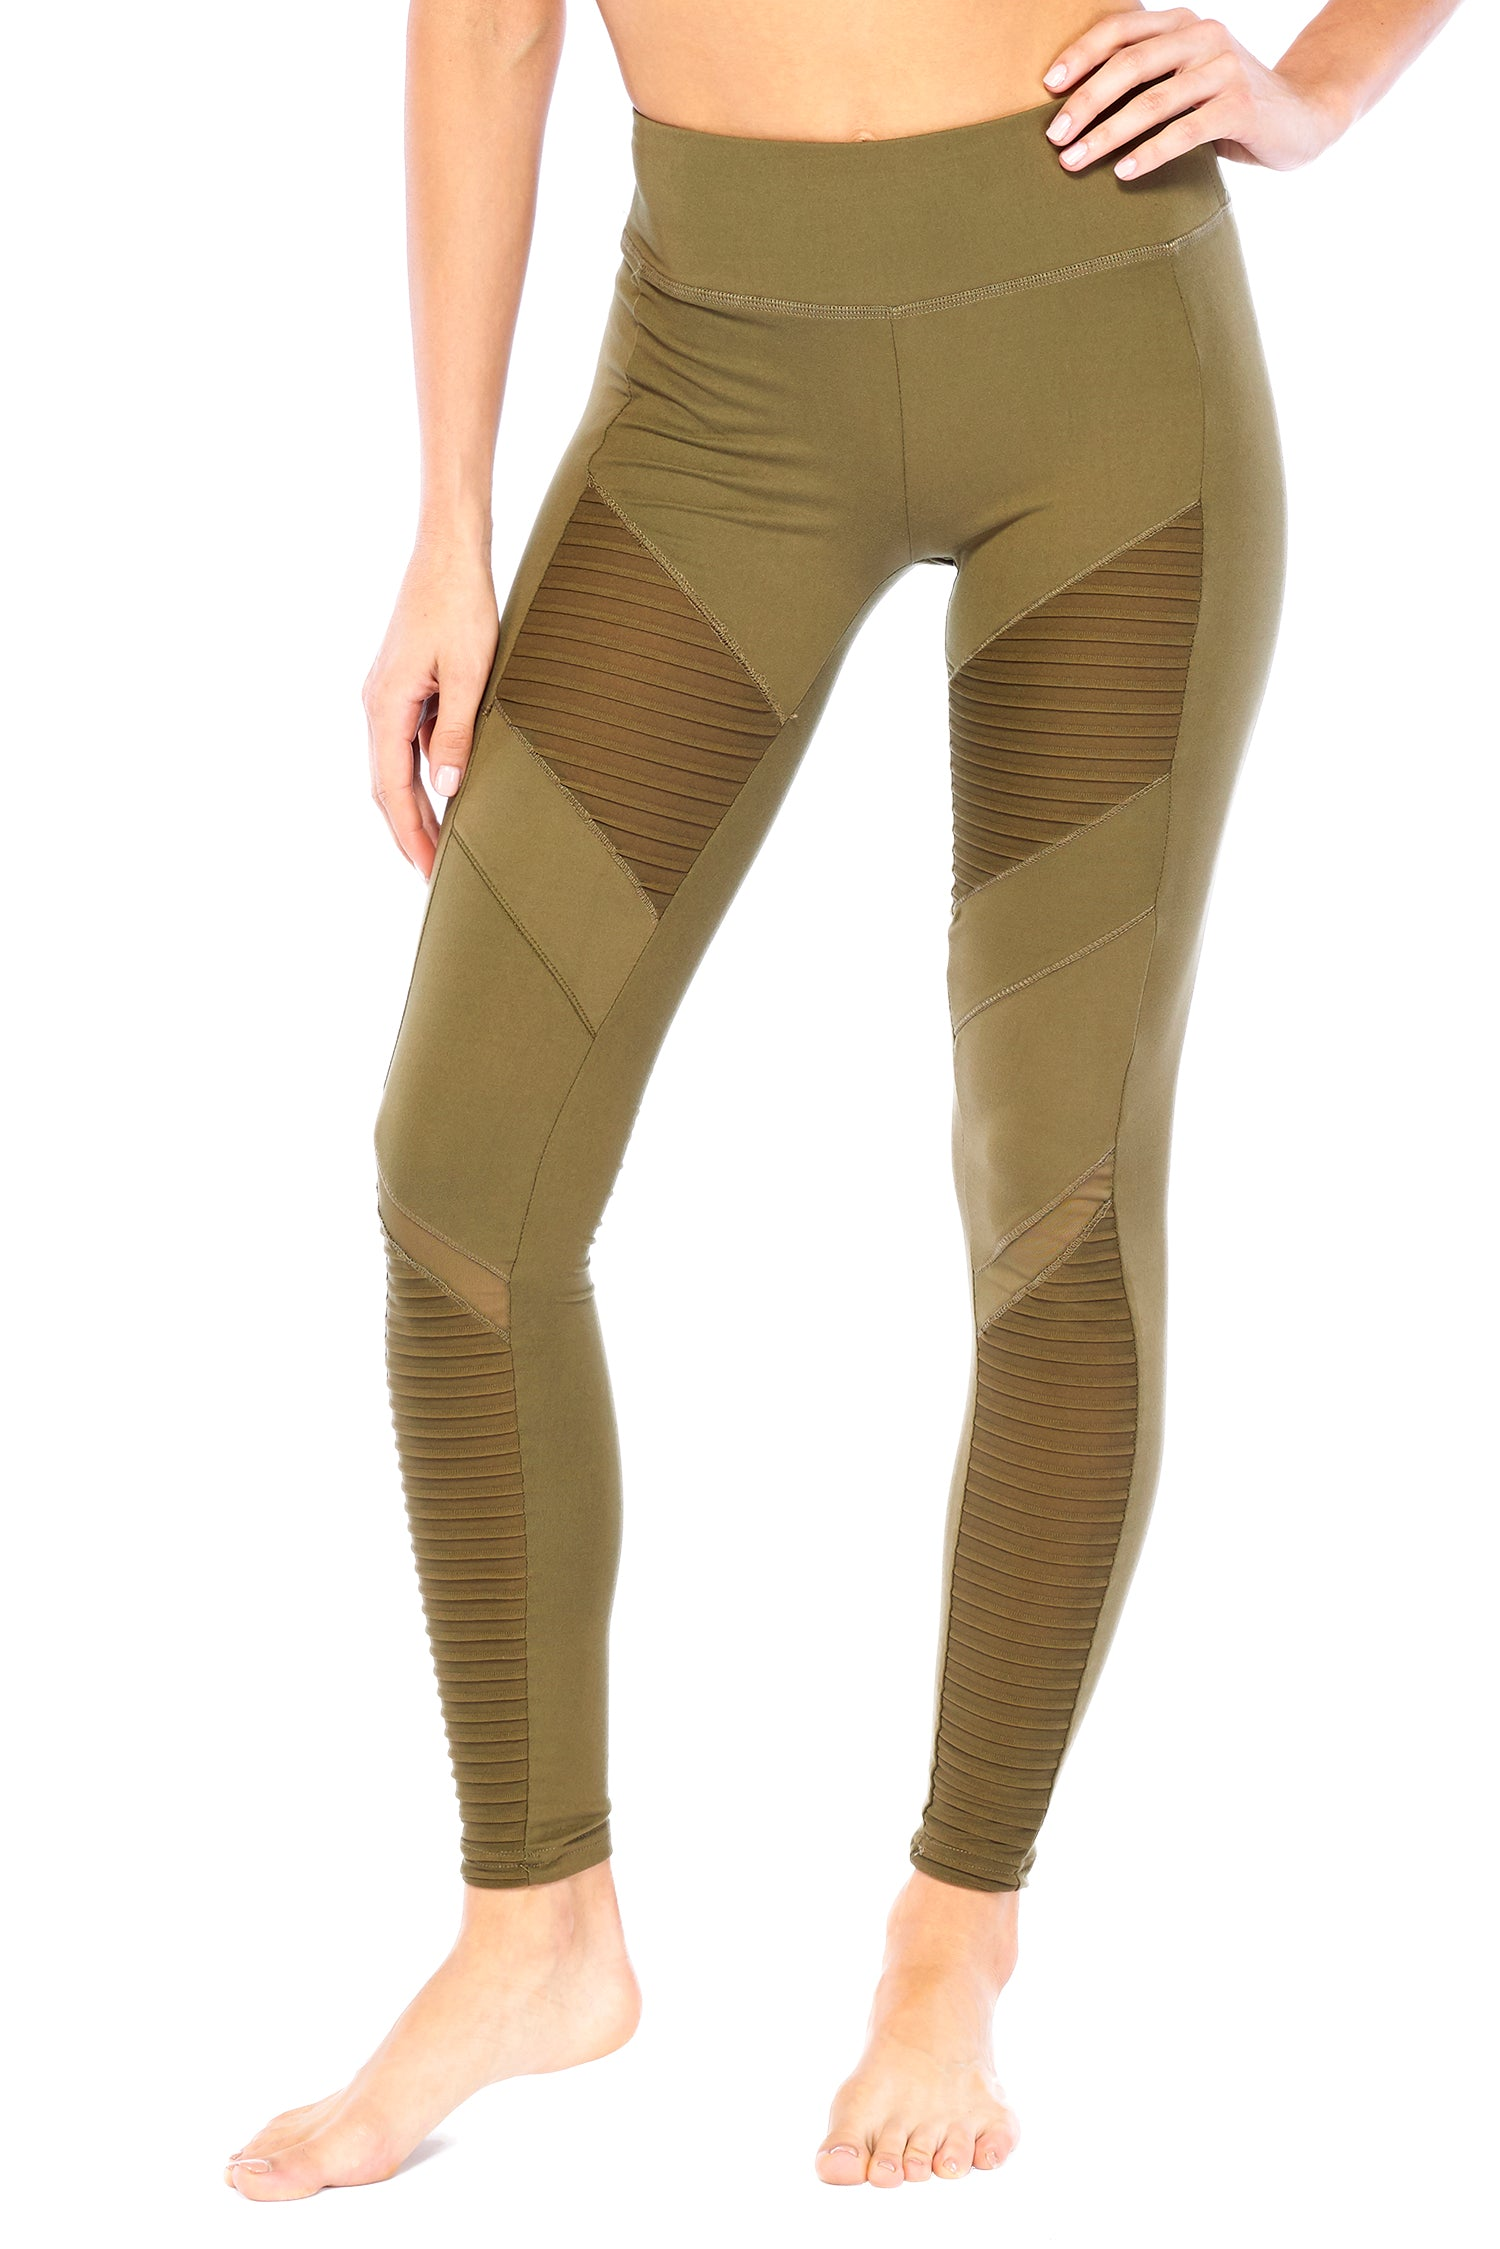 Wanted Leggings - Army